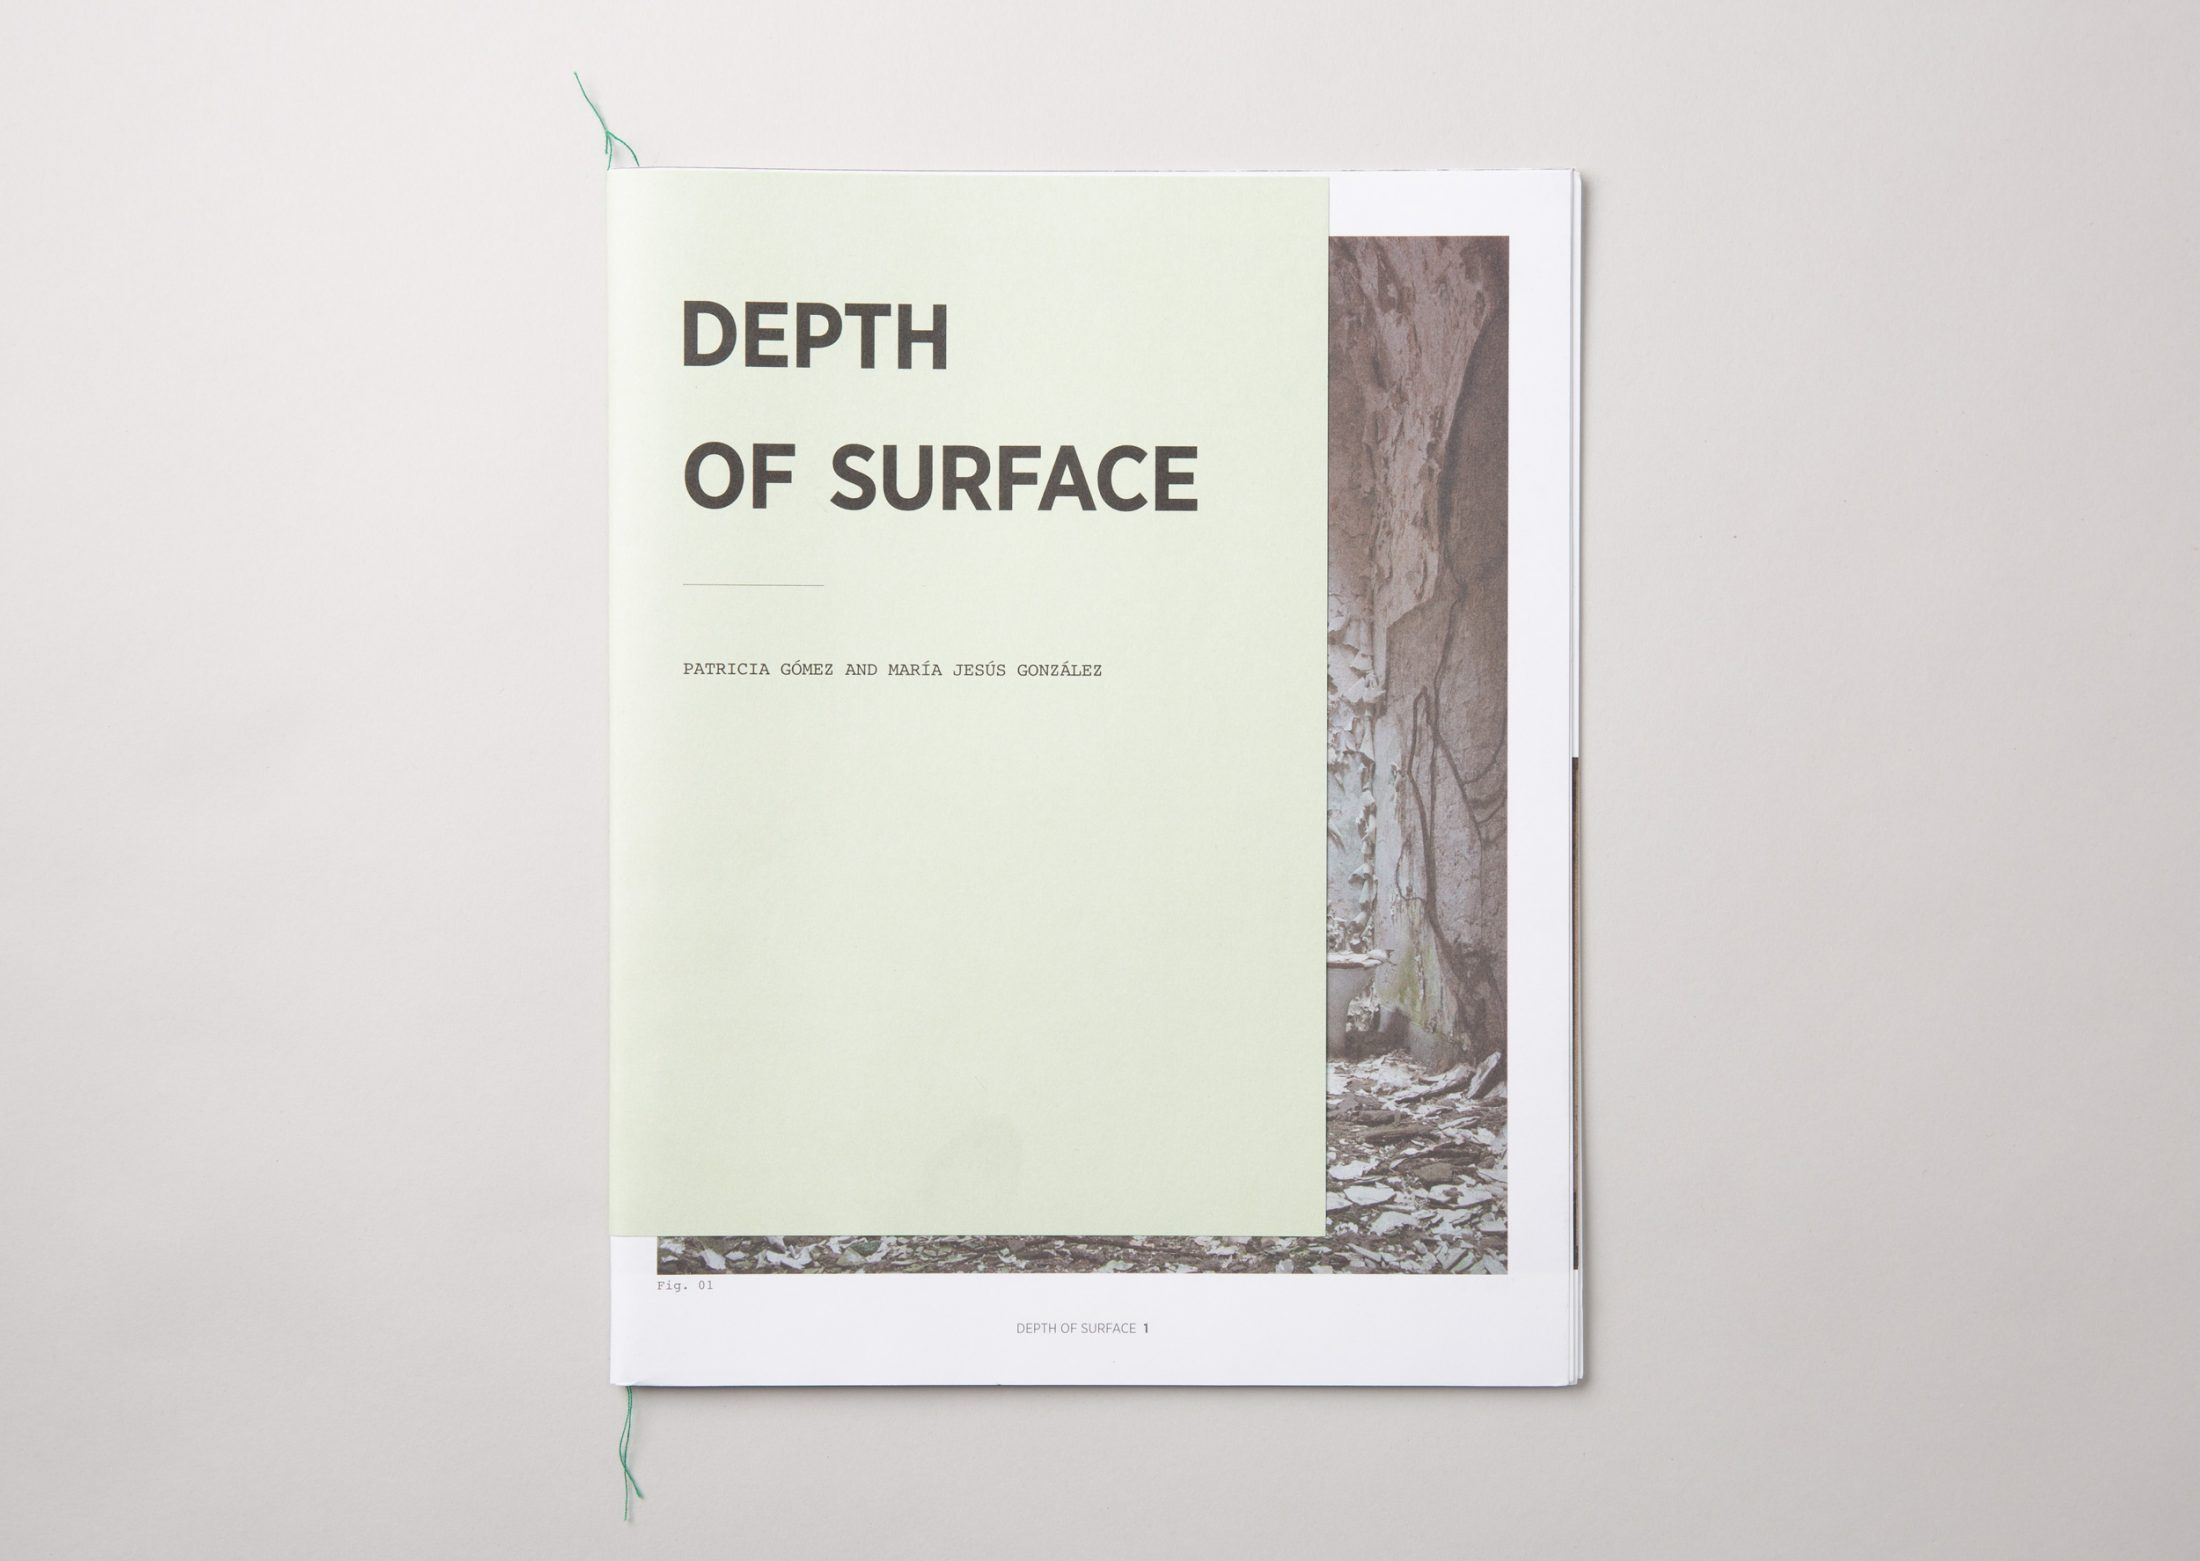 Depth of Surface